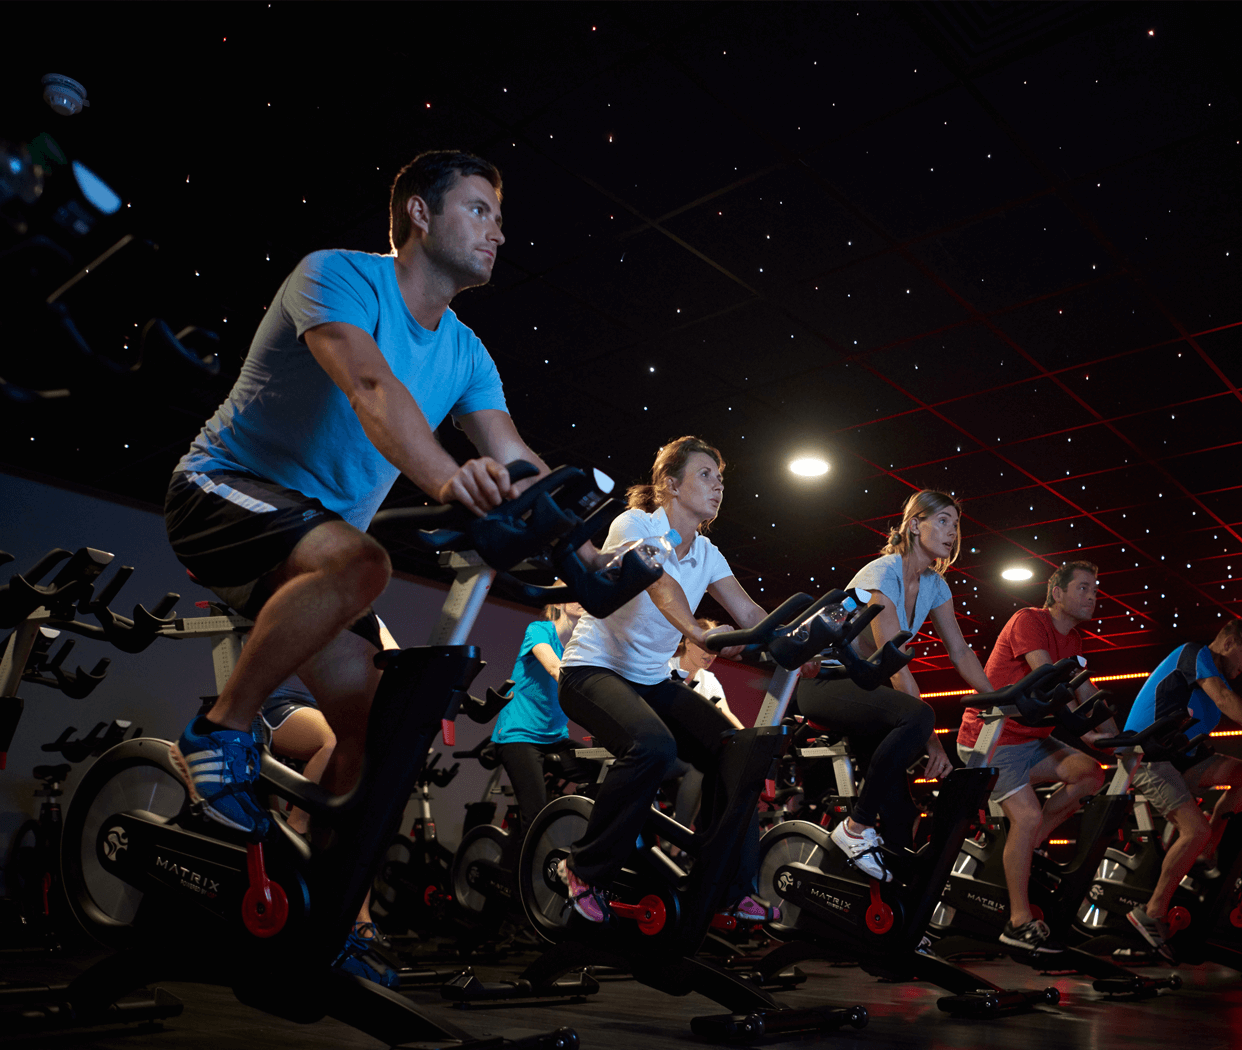 Sufferfest - The Rookie - Virtual® Studio - Race Simulation